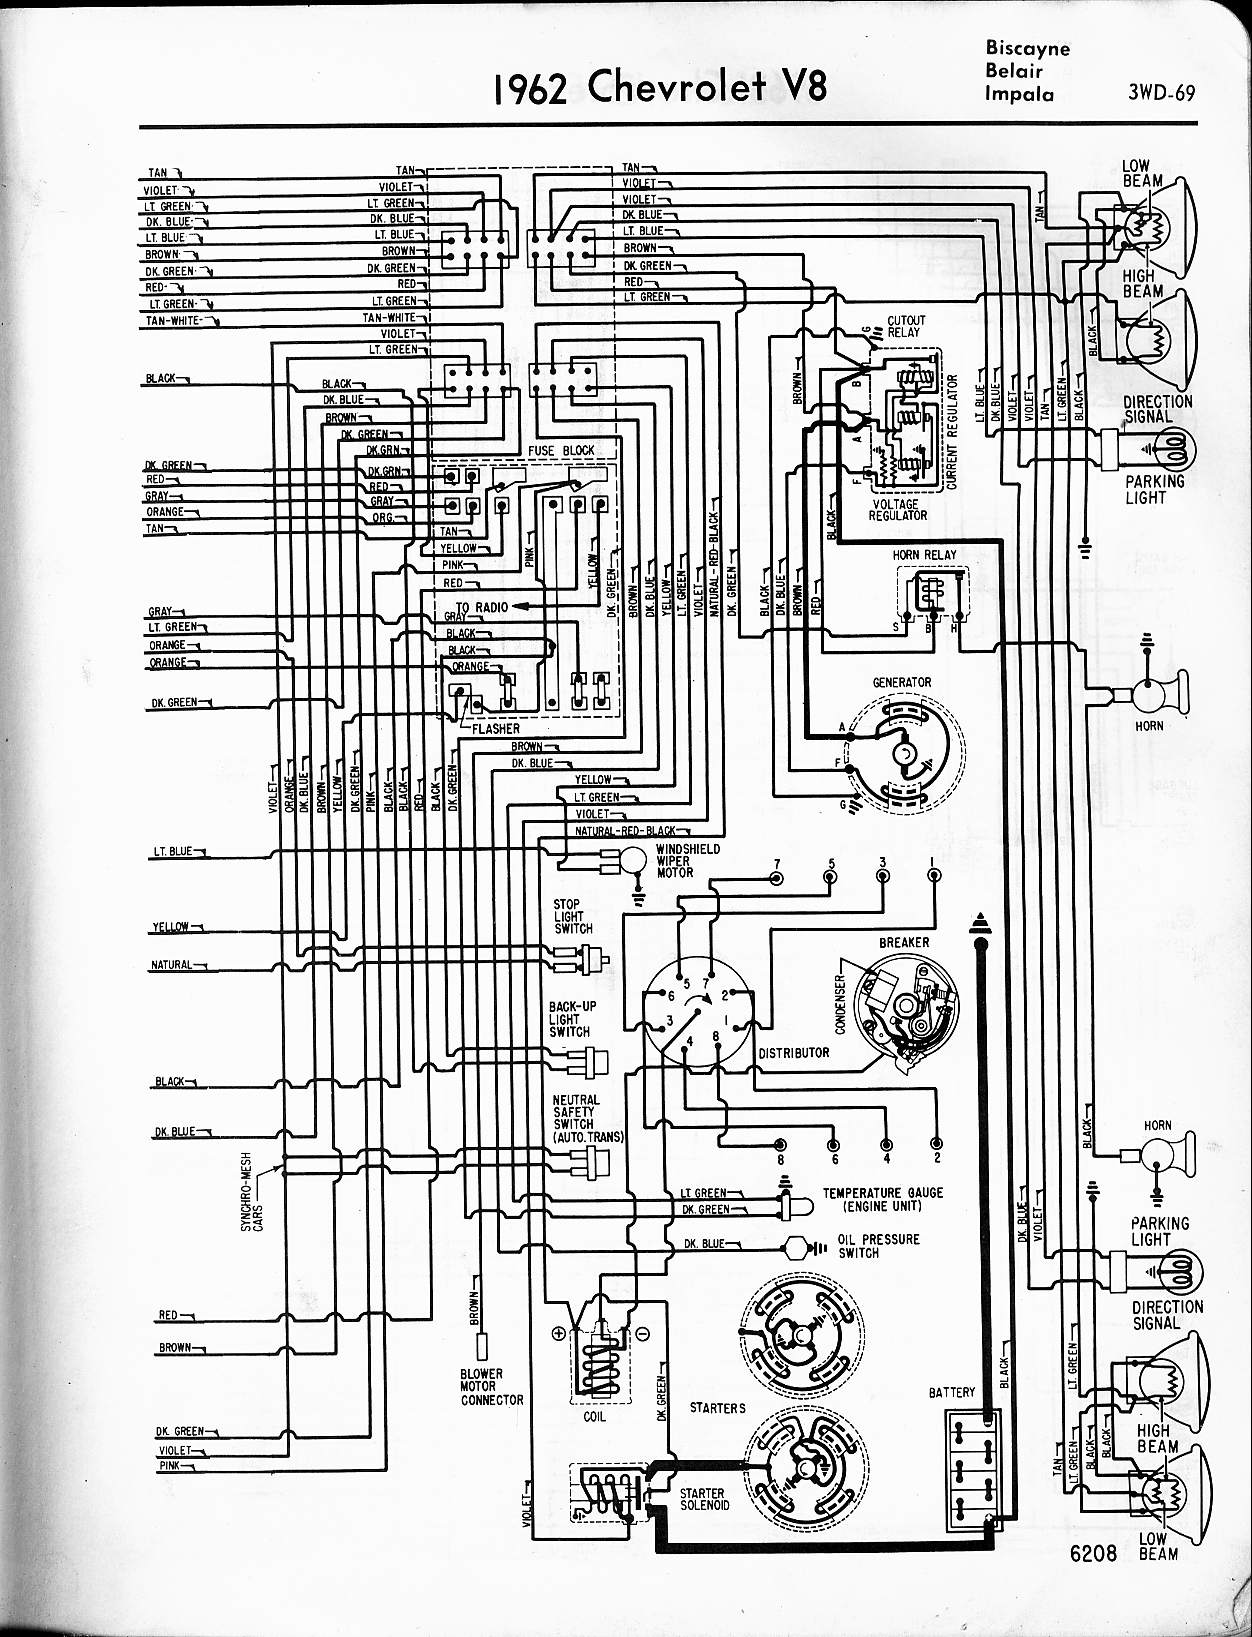 MWireChev62_3WD 069 1962 chevrolet wiring diagram manual chevytalk free 1961 Impala at creativeand.co